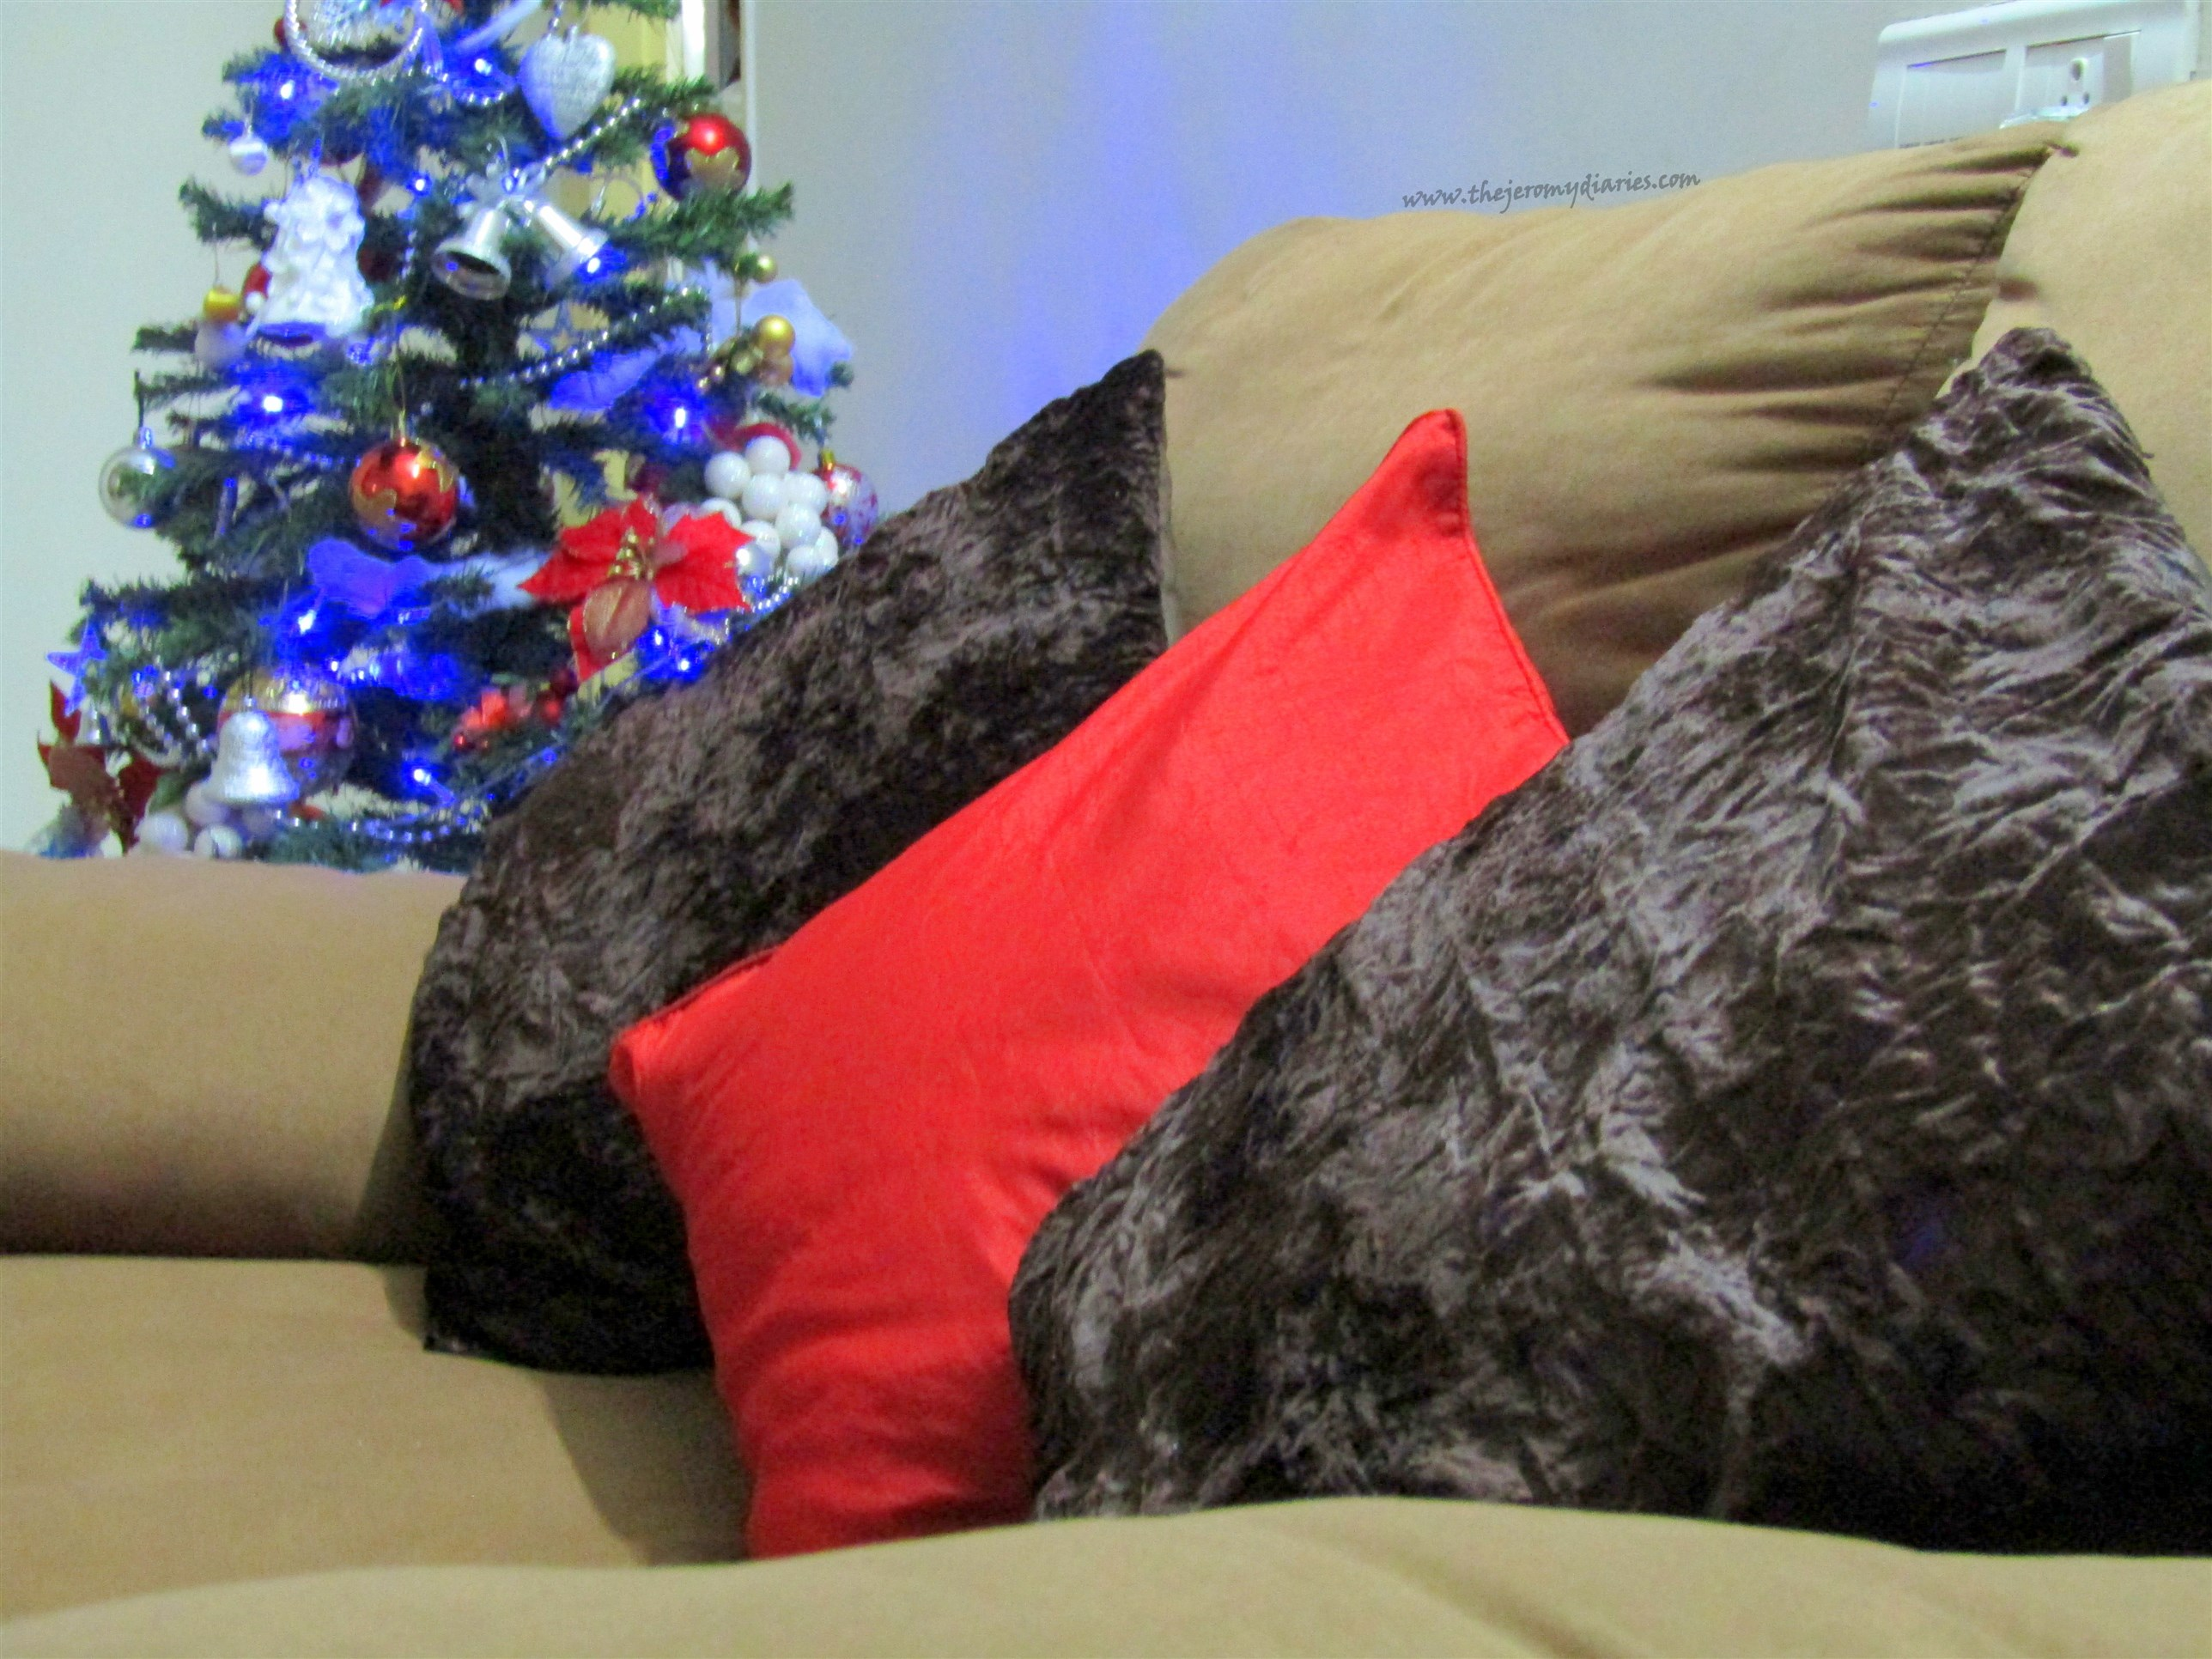 red cushion covers cotton house this the jeromy diaries jabong collab (2576 x 1932)